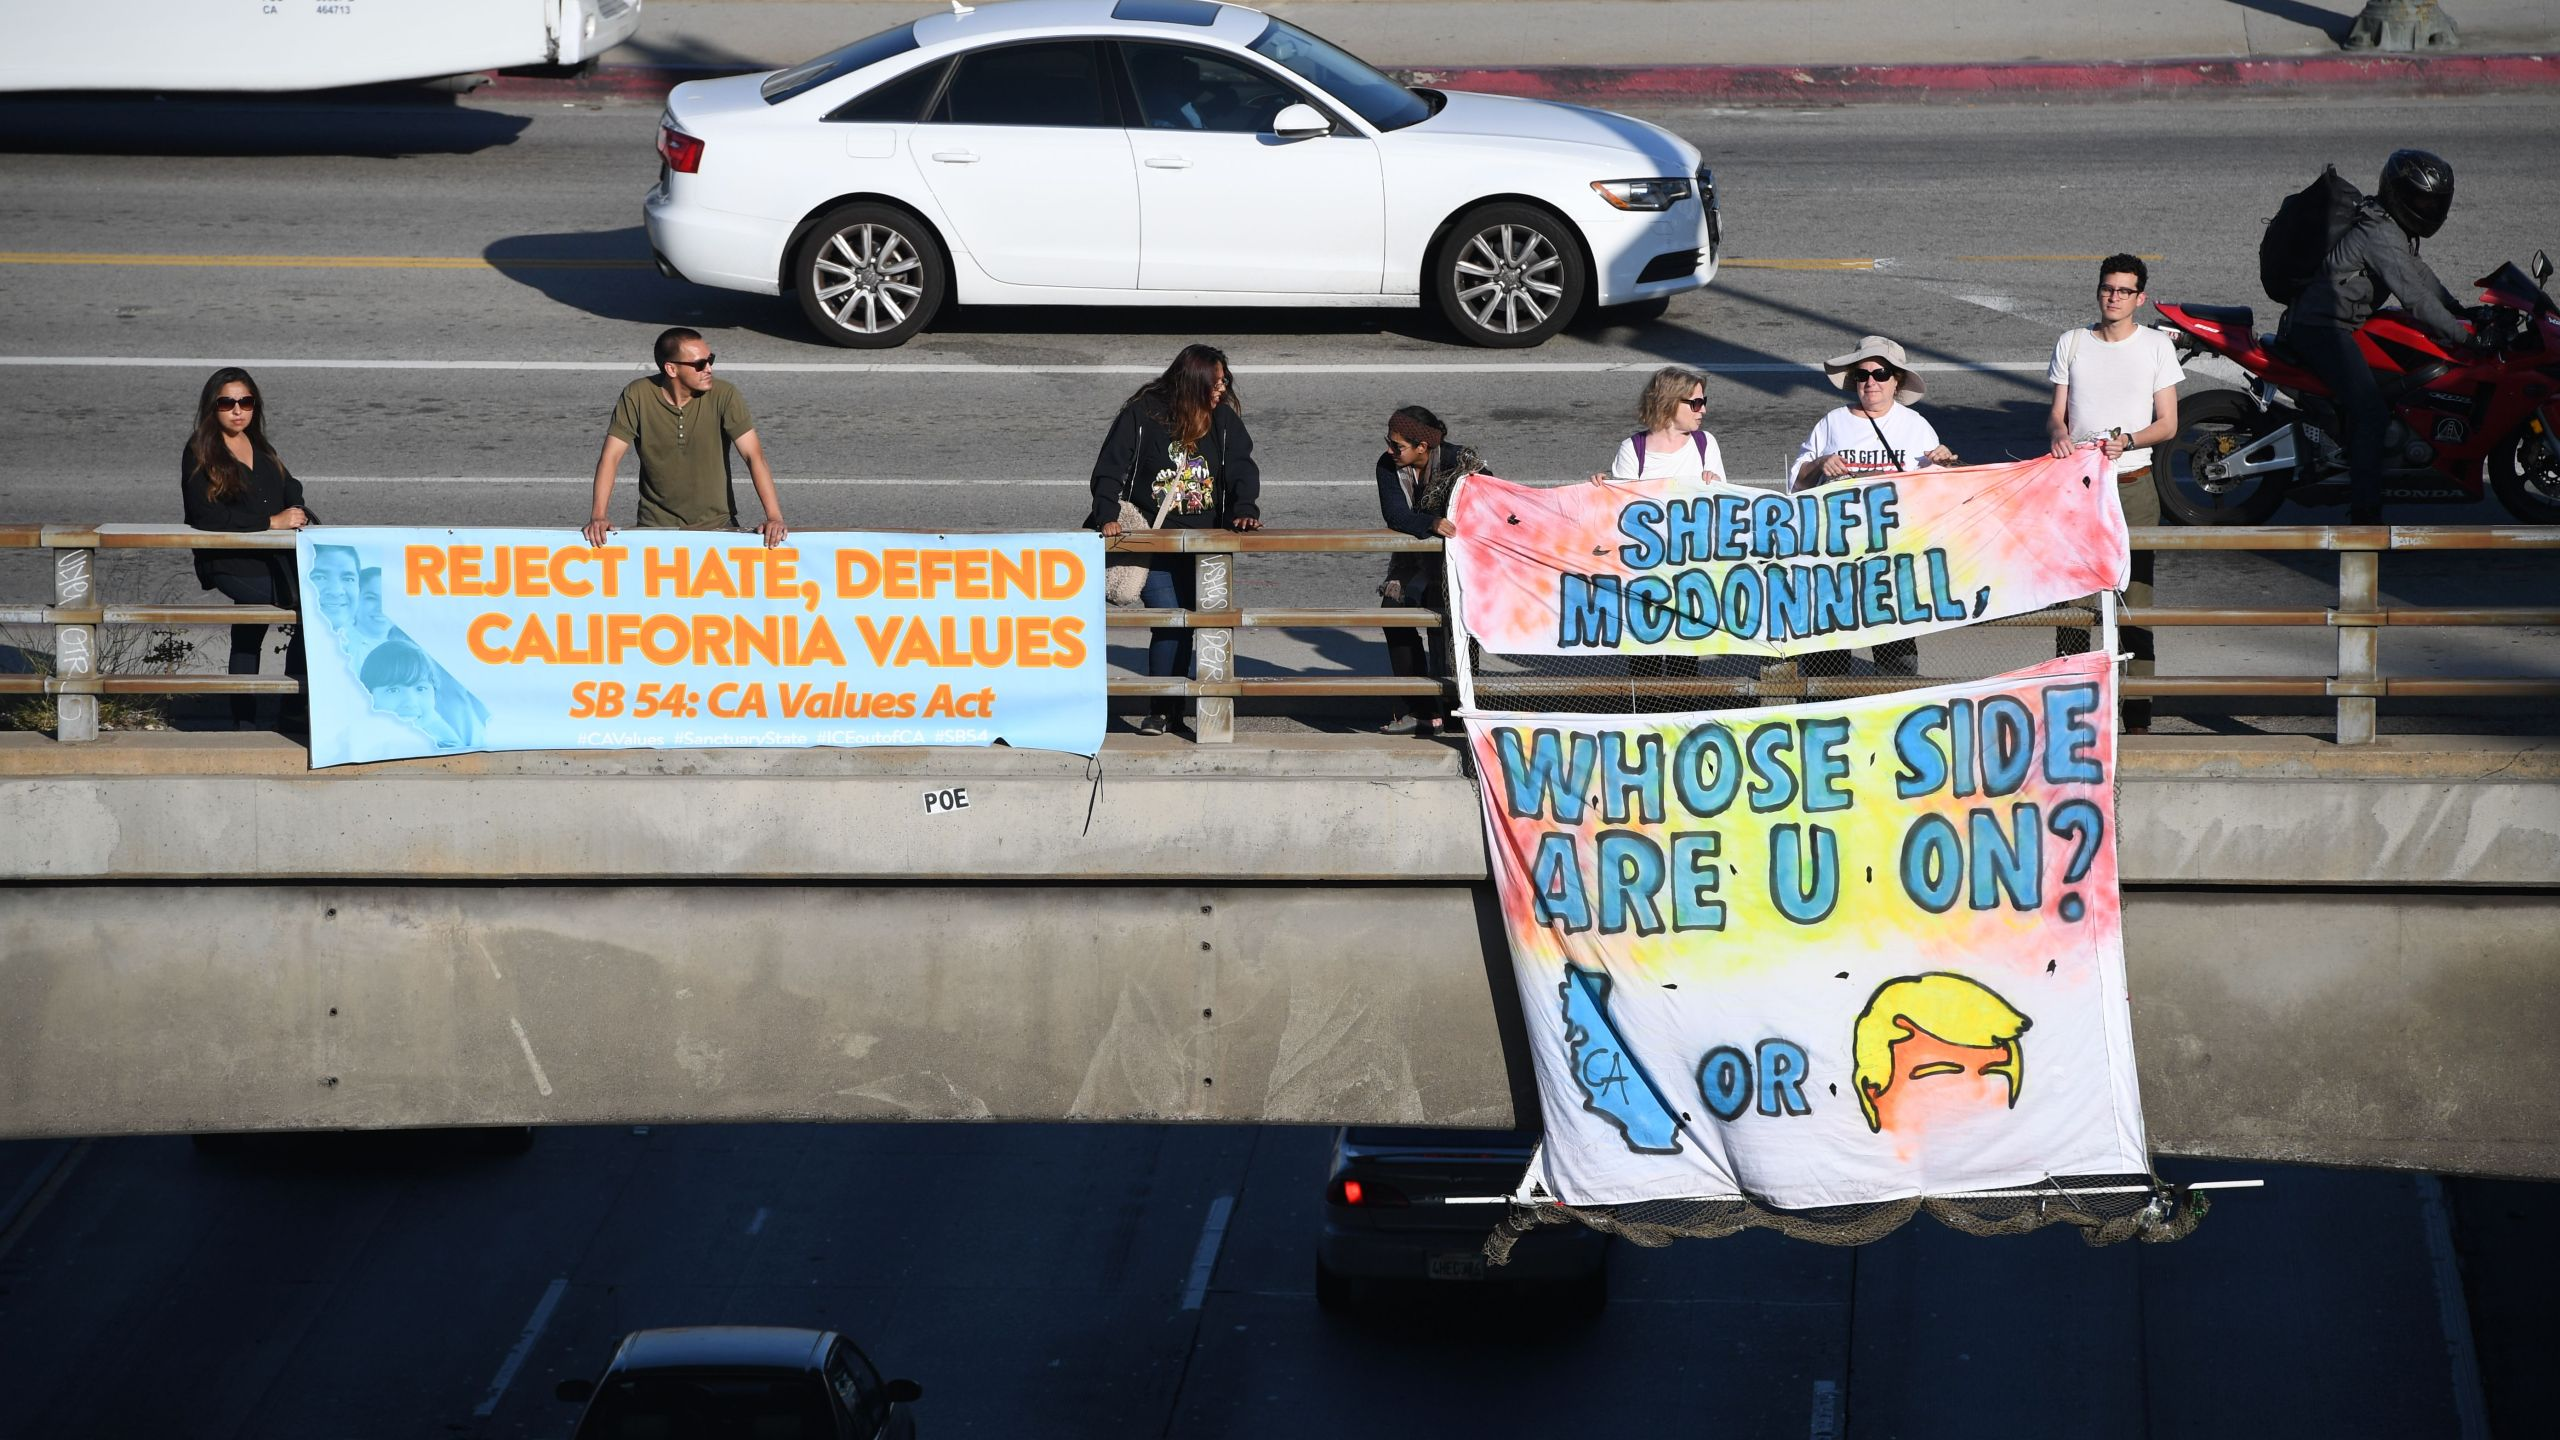 Protesters hold banners critical of Los Angeles County Sheriff Jim McDonnell's position against Senate Bill 54, the California Sanctuary State Bill or California Values Act, on a freeway overpass in downtown Los Angeles on May 24, 2017. (Credit: Robyn Beck / AFP / Getty Images)